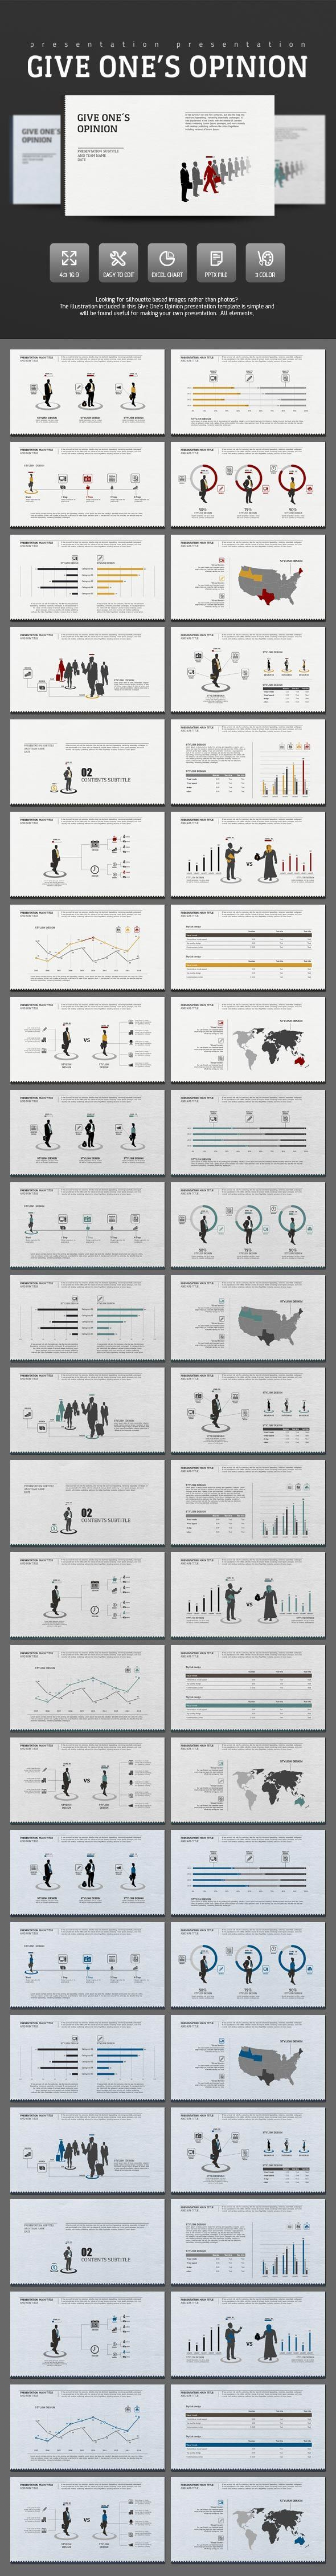 Give Opinion - PowerPoint Presentation Template #slides Download here: http://graphicriver.net/item/give-opinion/14622045?ref=ksioks